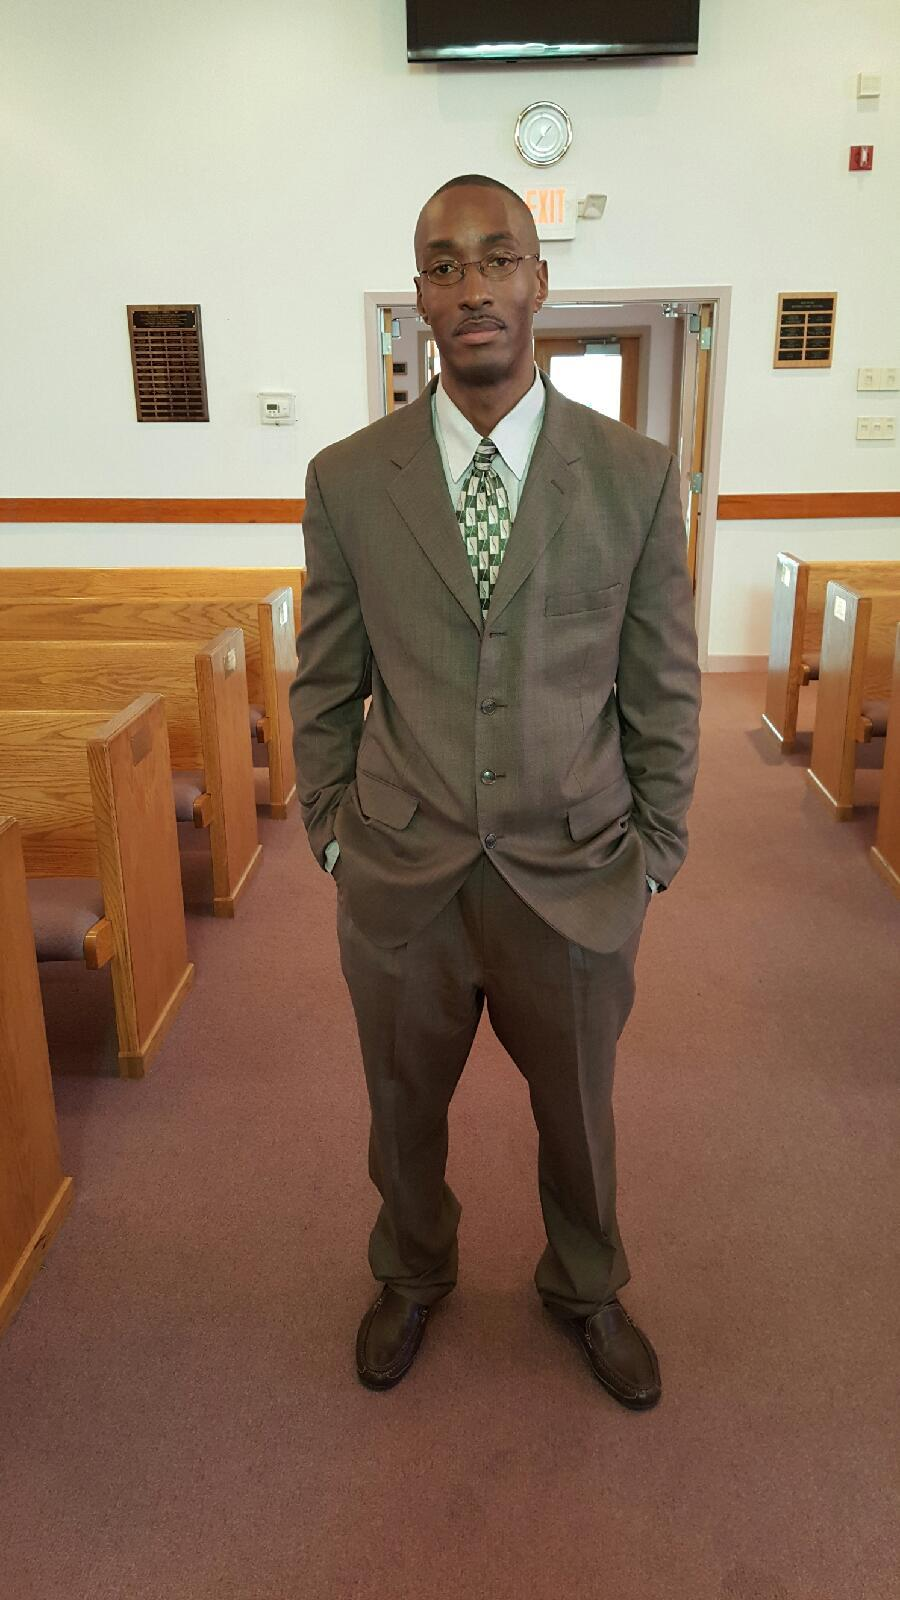 After having his convictions overturned on May 5, 2015, and being freed on bail on June 3, Sean Ellis attended church -- a free man.